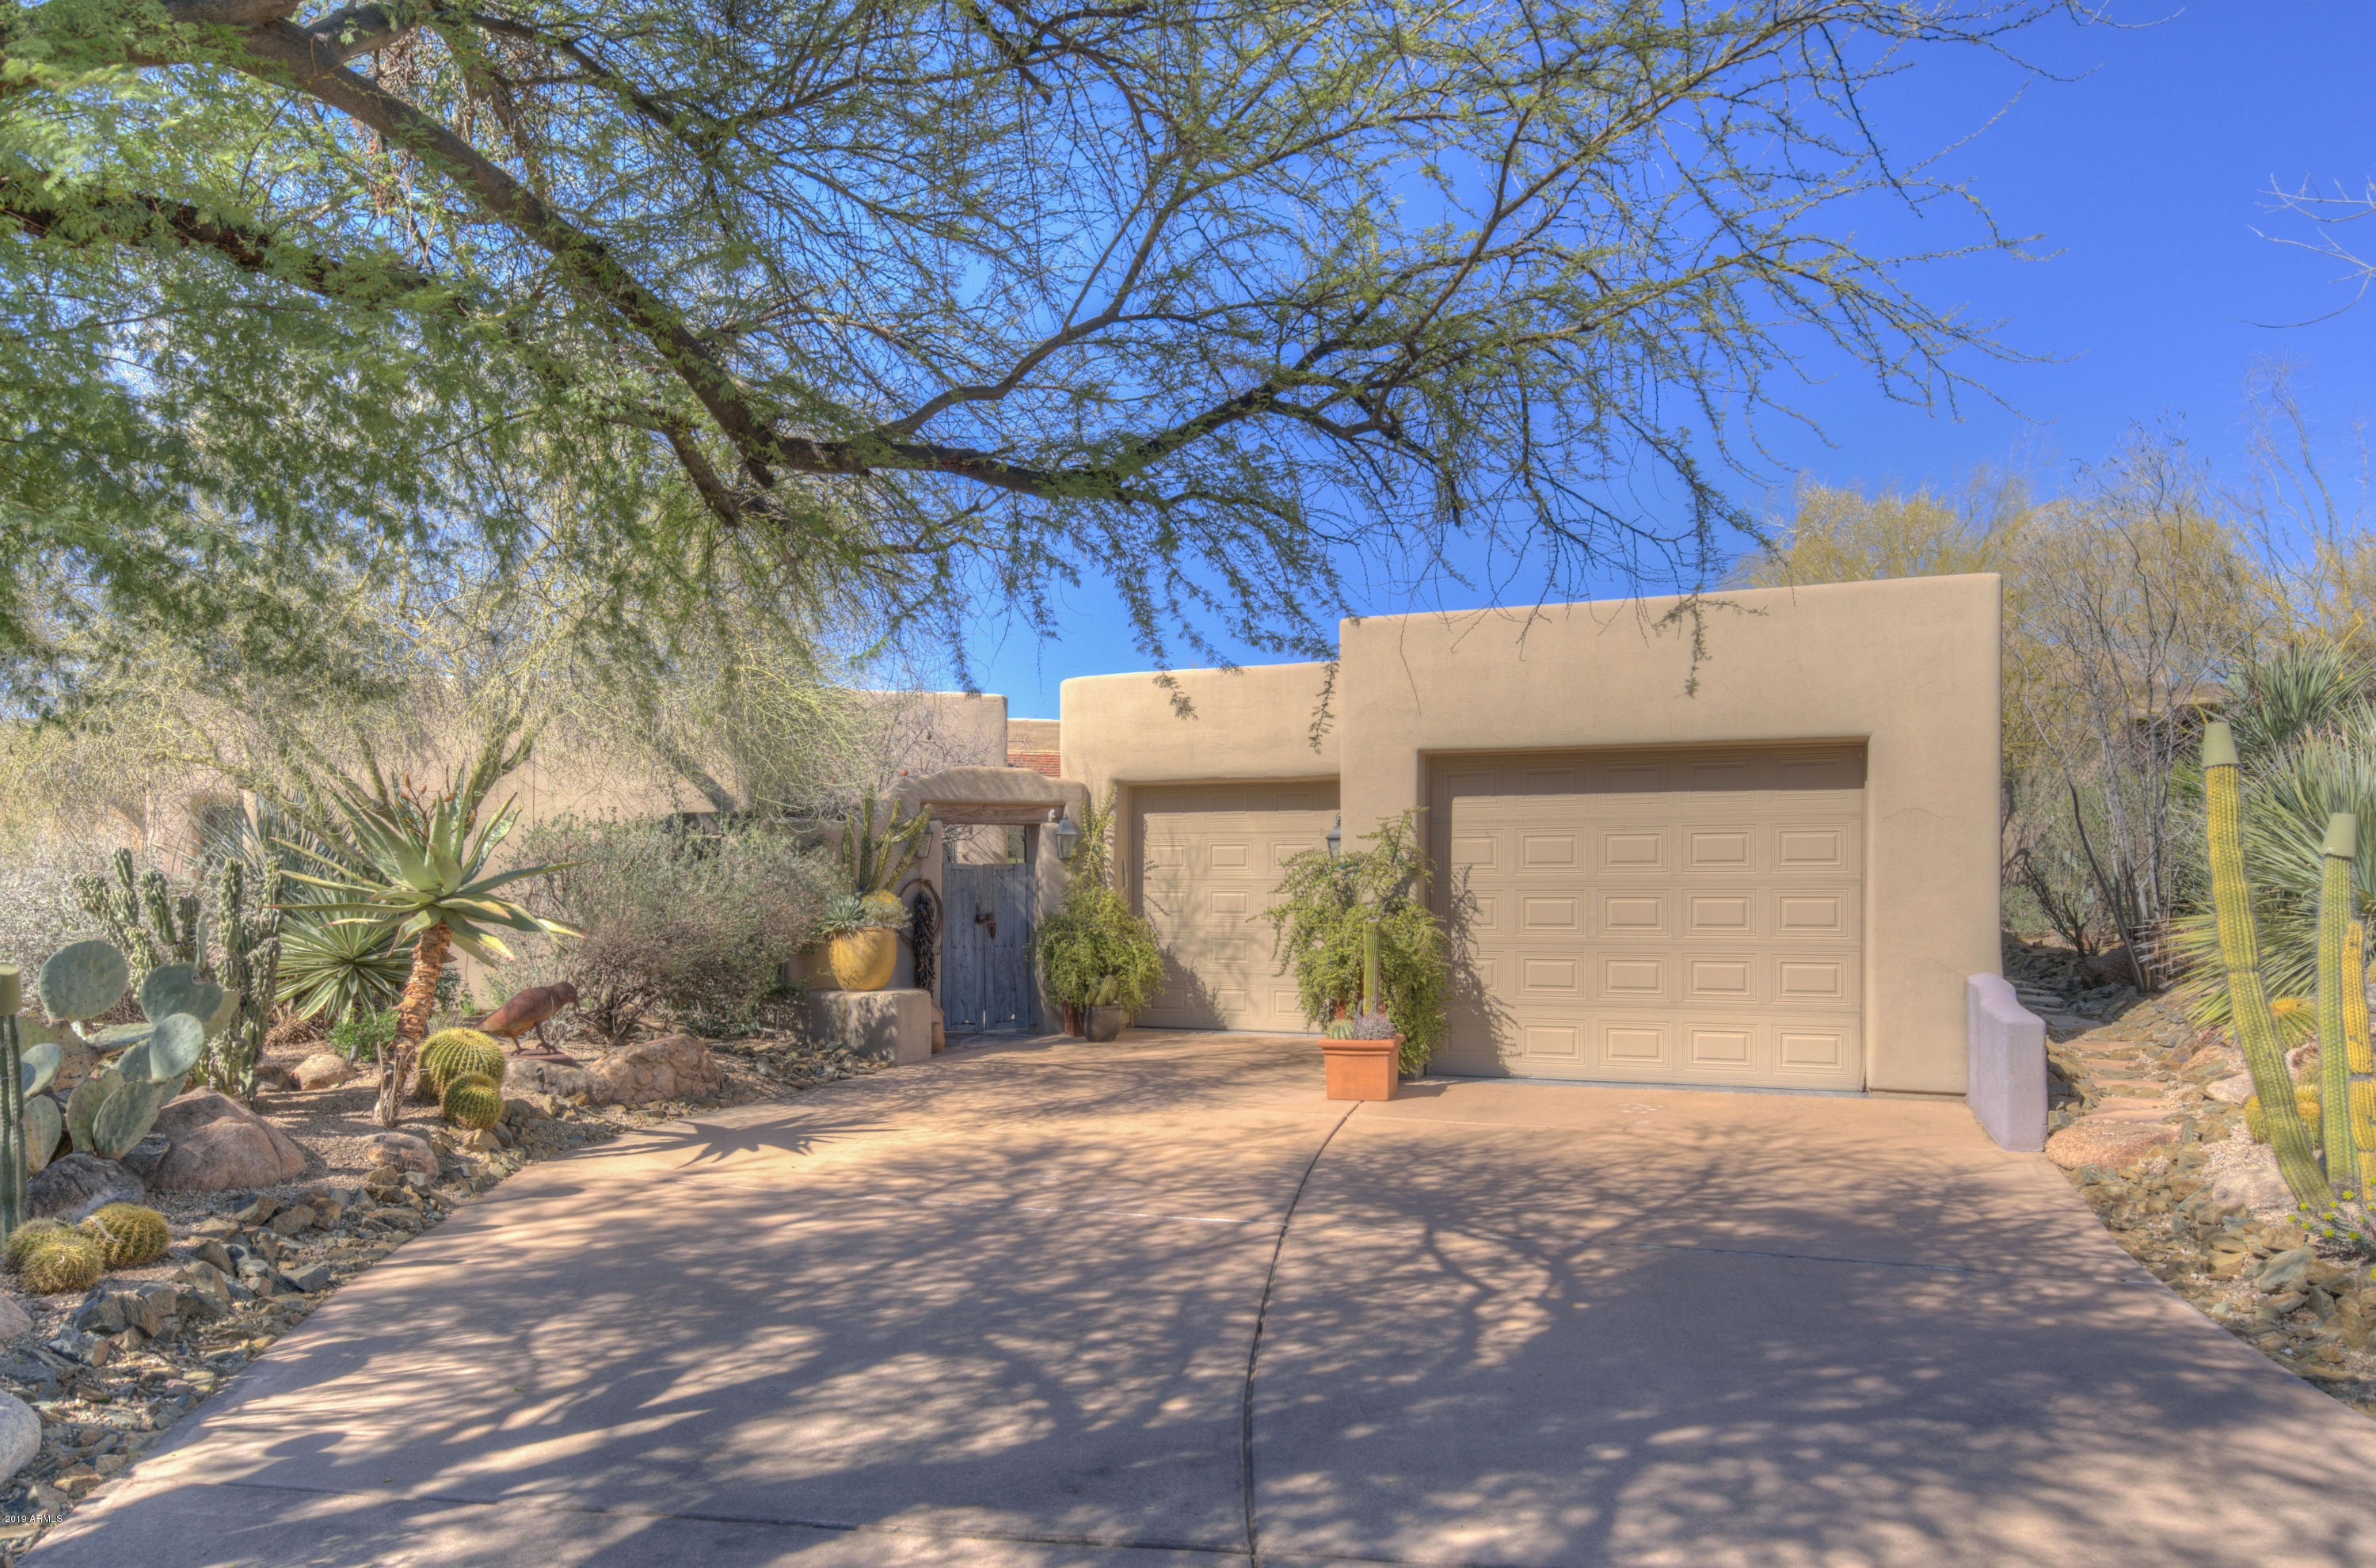 Photo of 1620 N QUARTZ VALLEY Road, Scottsdale, AZ 85266